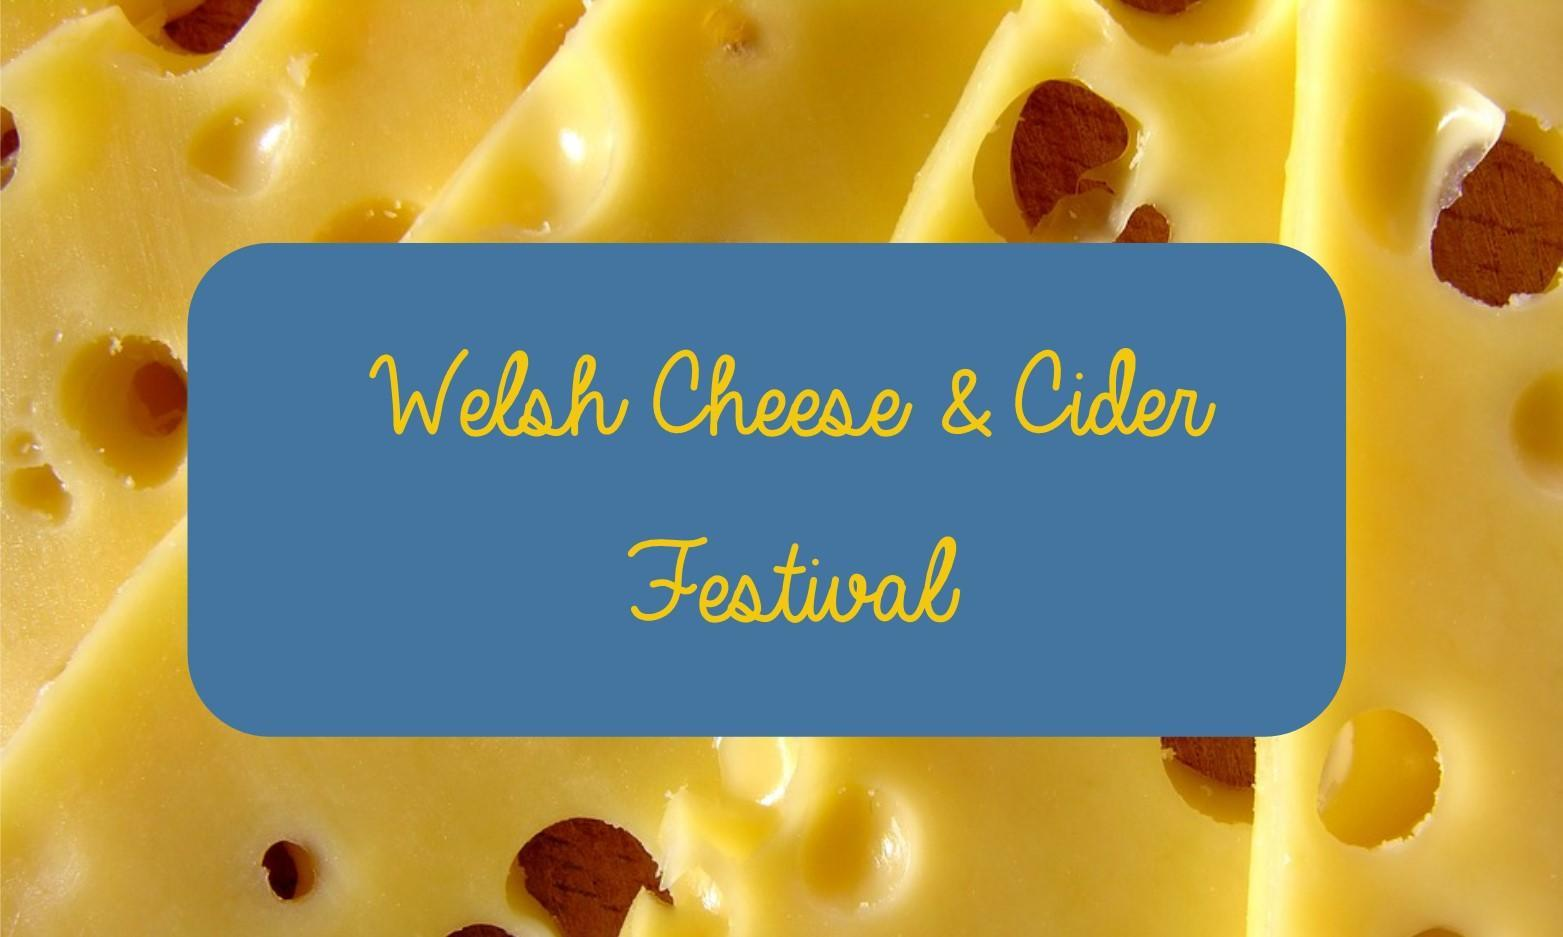 Welsh Cheese and Cider Festival